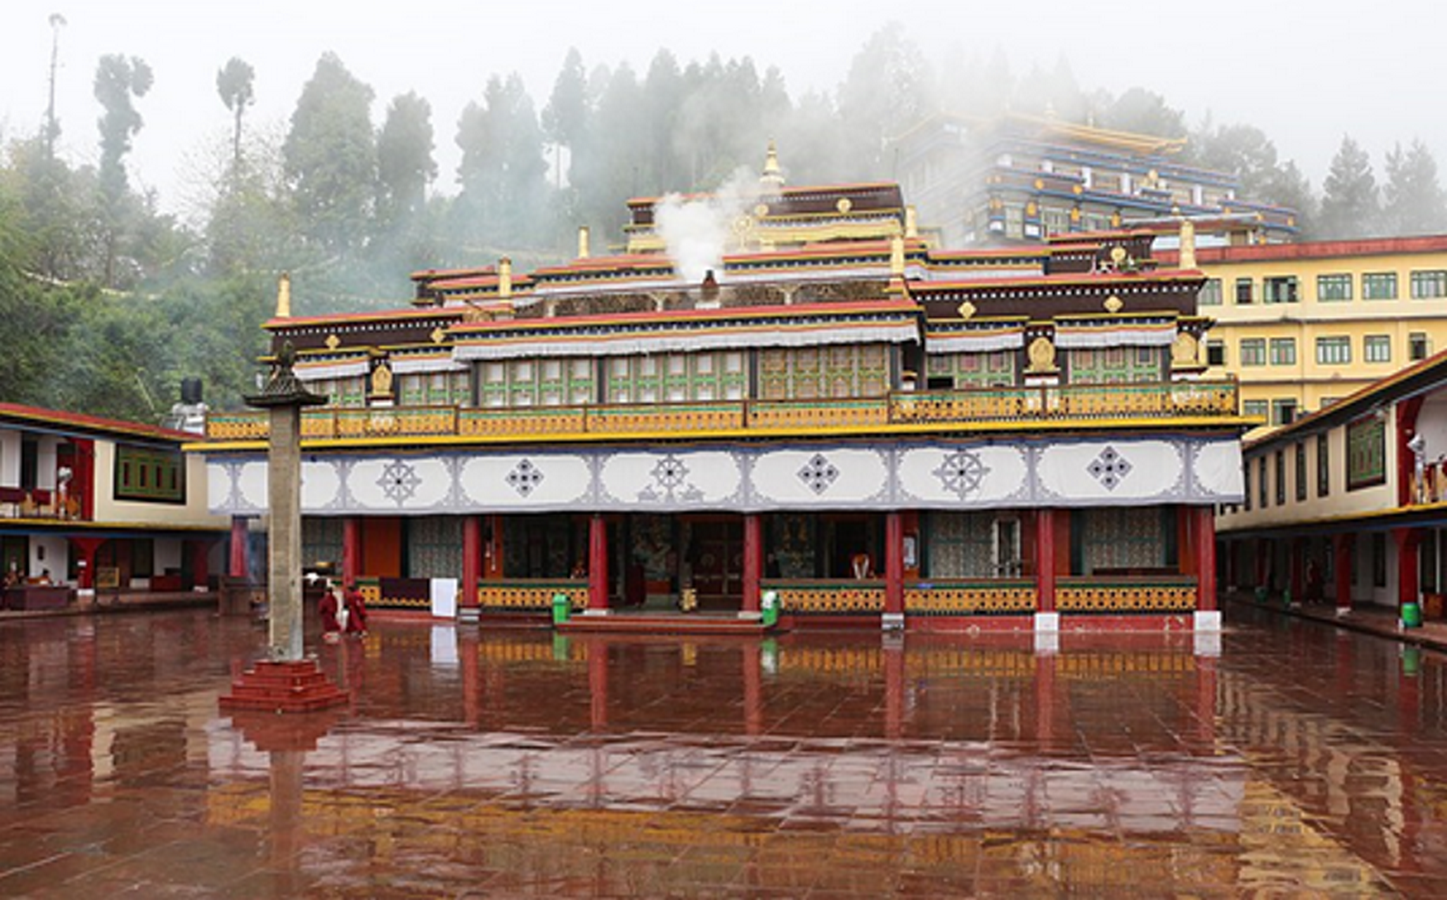 Architecture of Indian Cities Gangtok- Inside the tranquility of Buddhist heritage - Sheet8